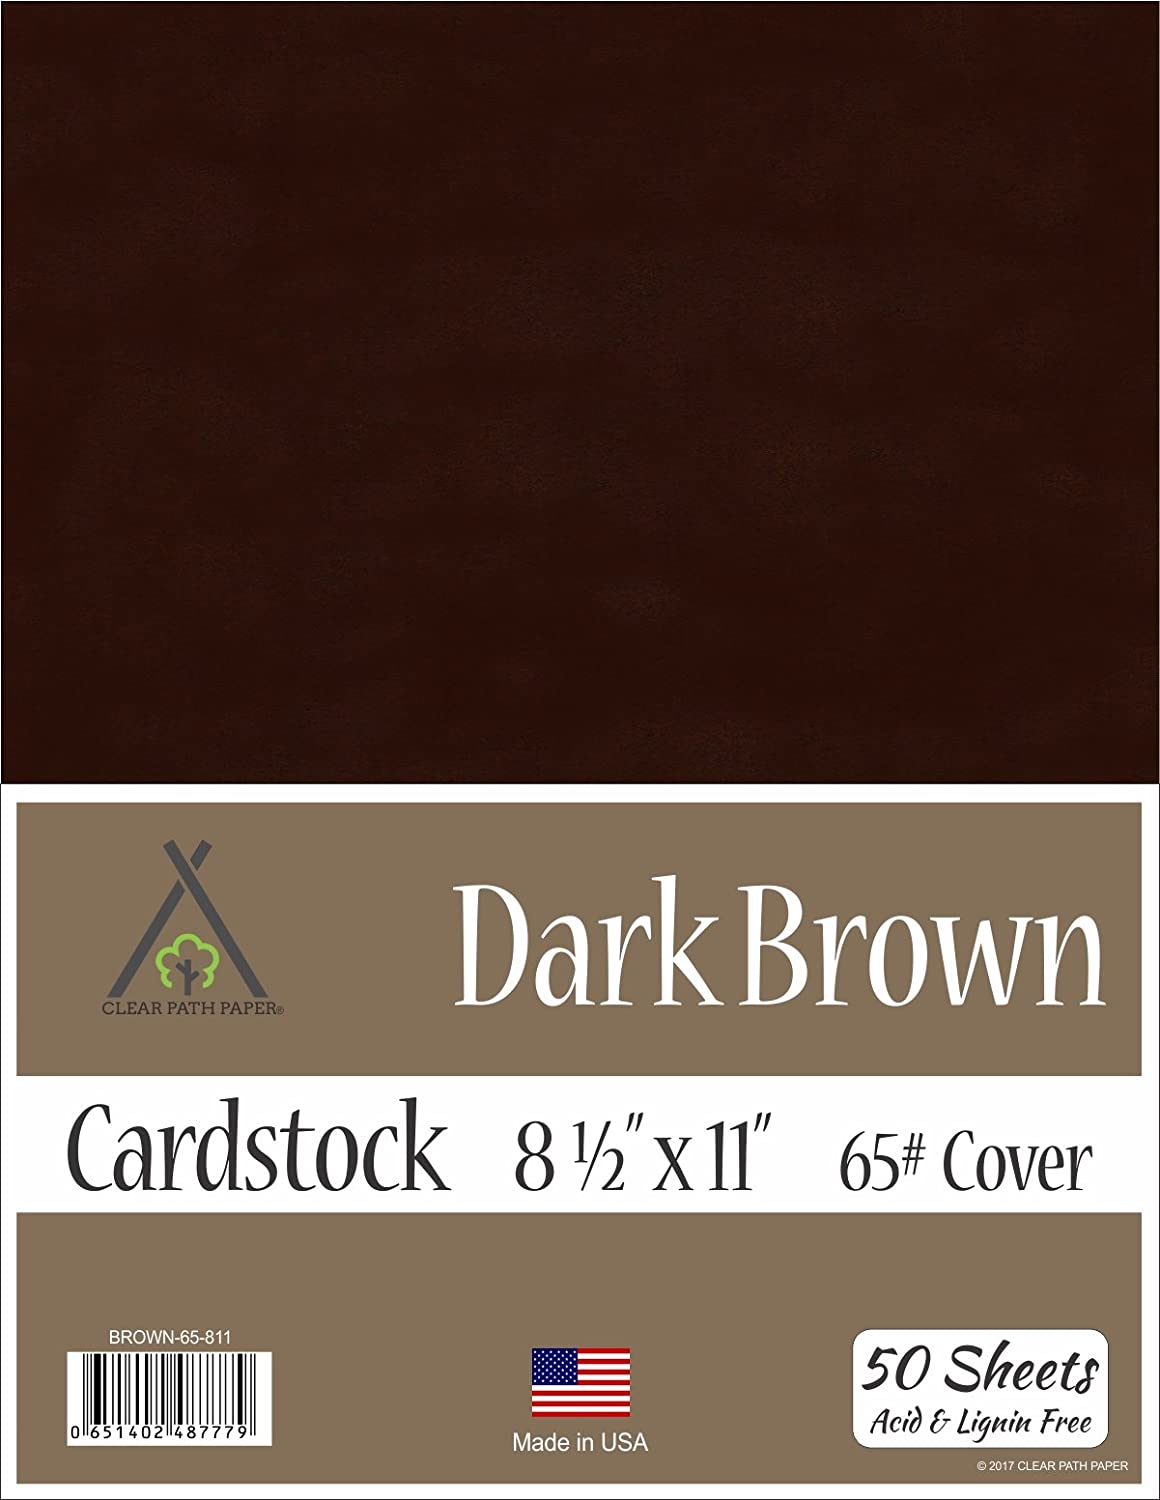 Dark Brown Cardstock - 8.5 x 11 inch - 65Lb Cover - 50 Sheets Clear Path Paper 4336868143